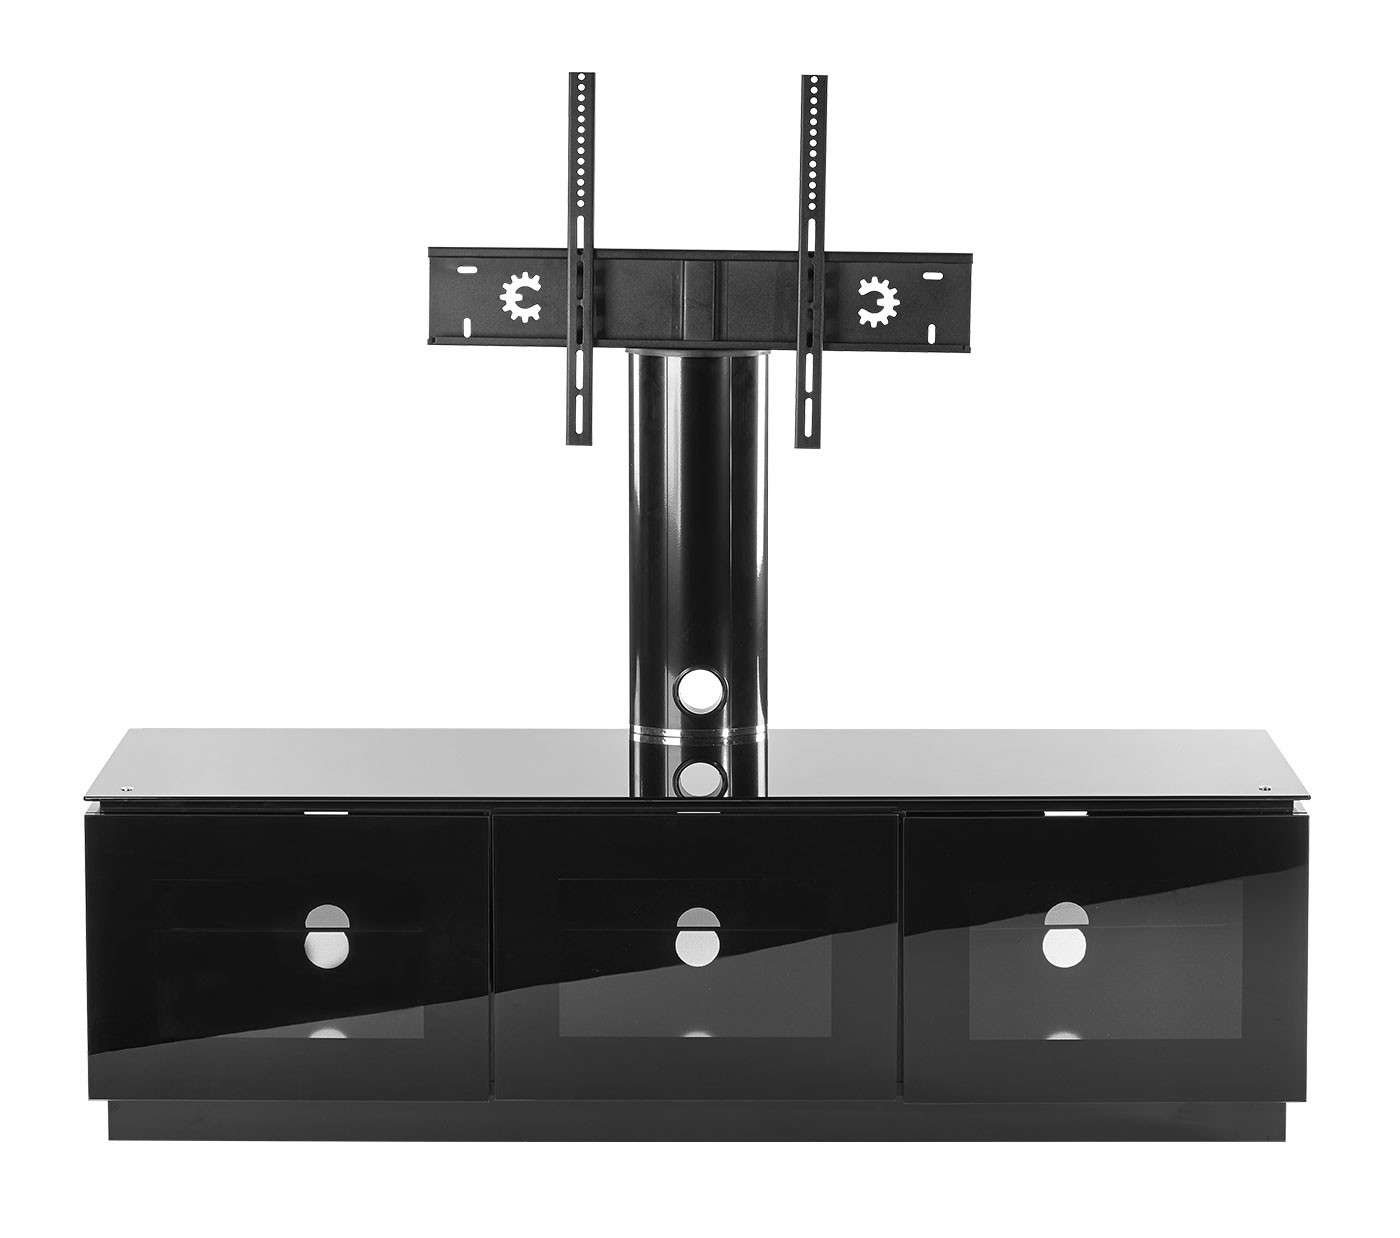 Black Tv Cabinet With Mount For Up To 65 Inch Tv | Mmt D1500 Xarm With Regard To Black Tv Stands (View 4 of 20)